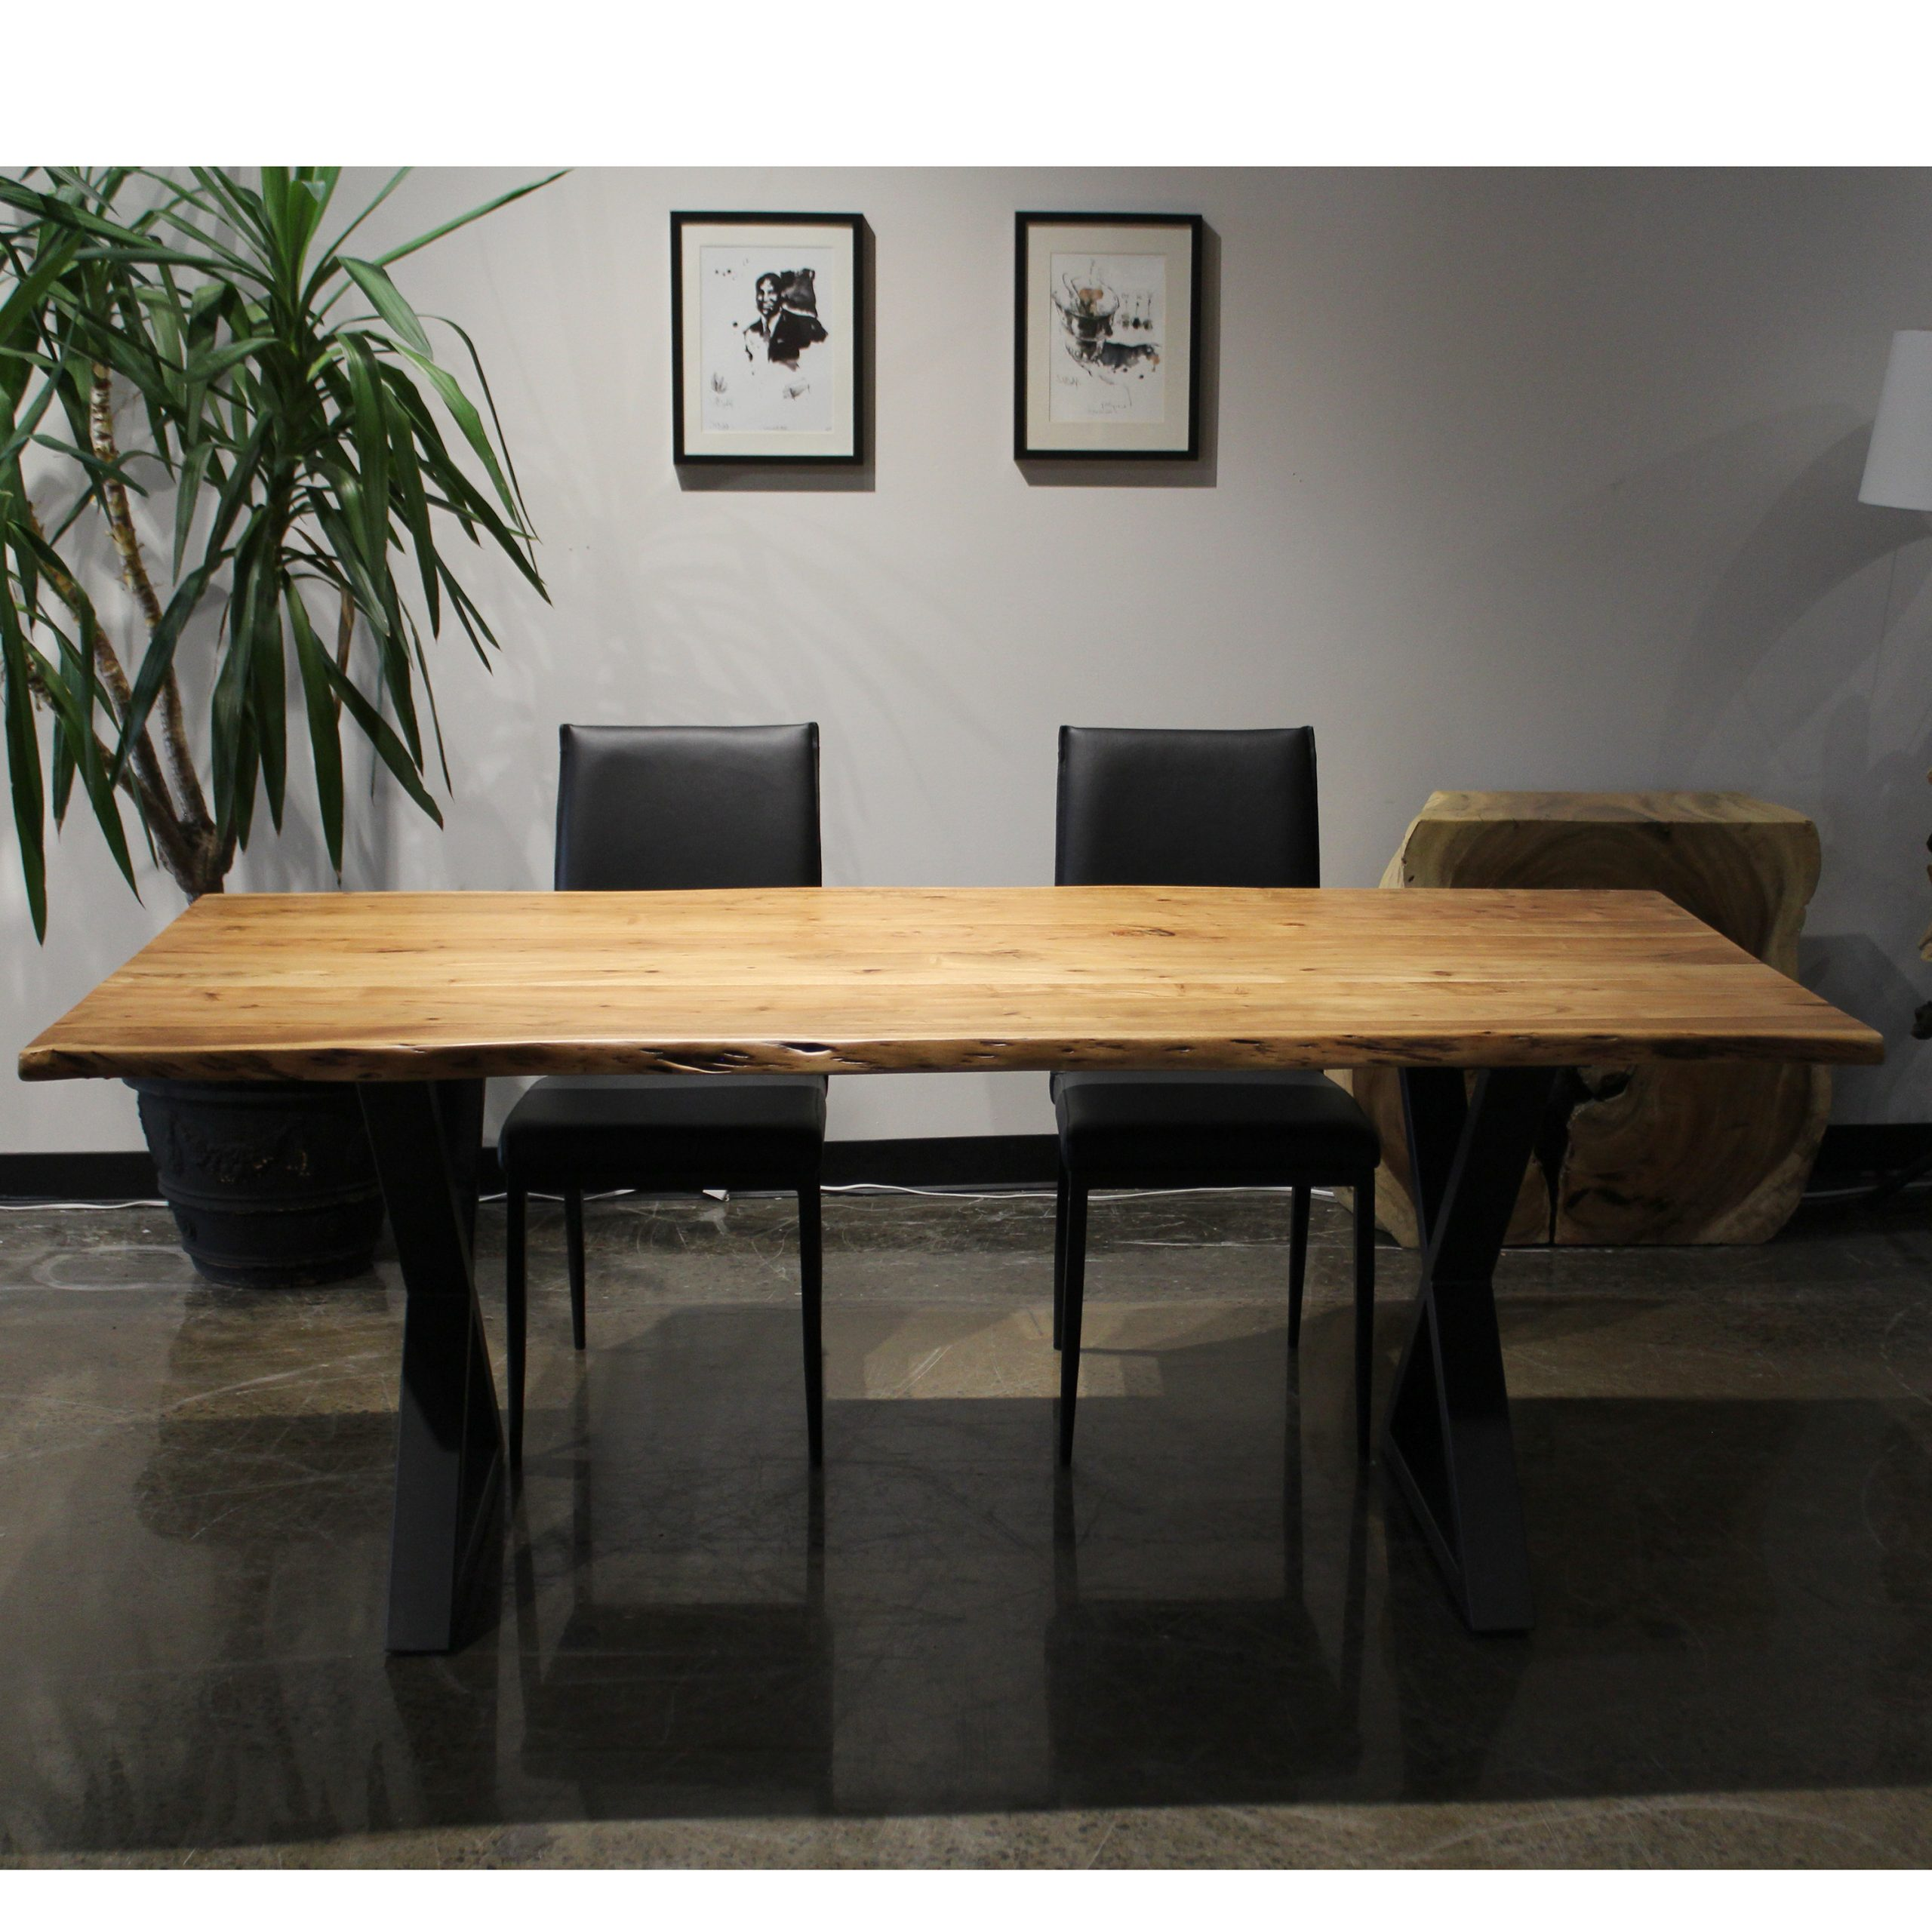 Most Current Acacia Dining Tables With Black Rocket Legs Within Corcoran Walnut Acacia Dining Table – 80 In – Black Metal U Legs (Gallery 13 of 30)